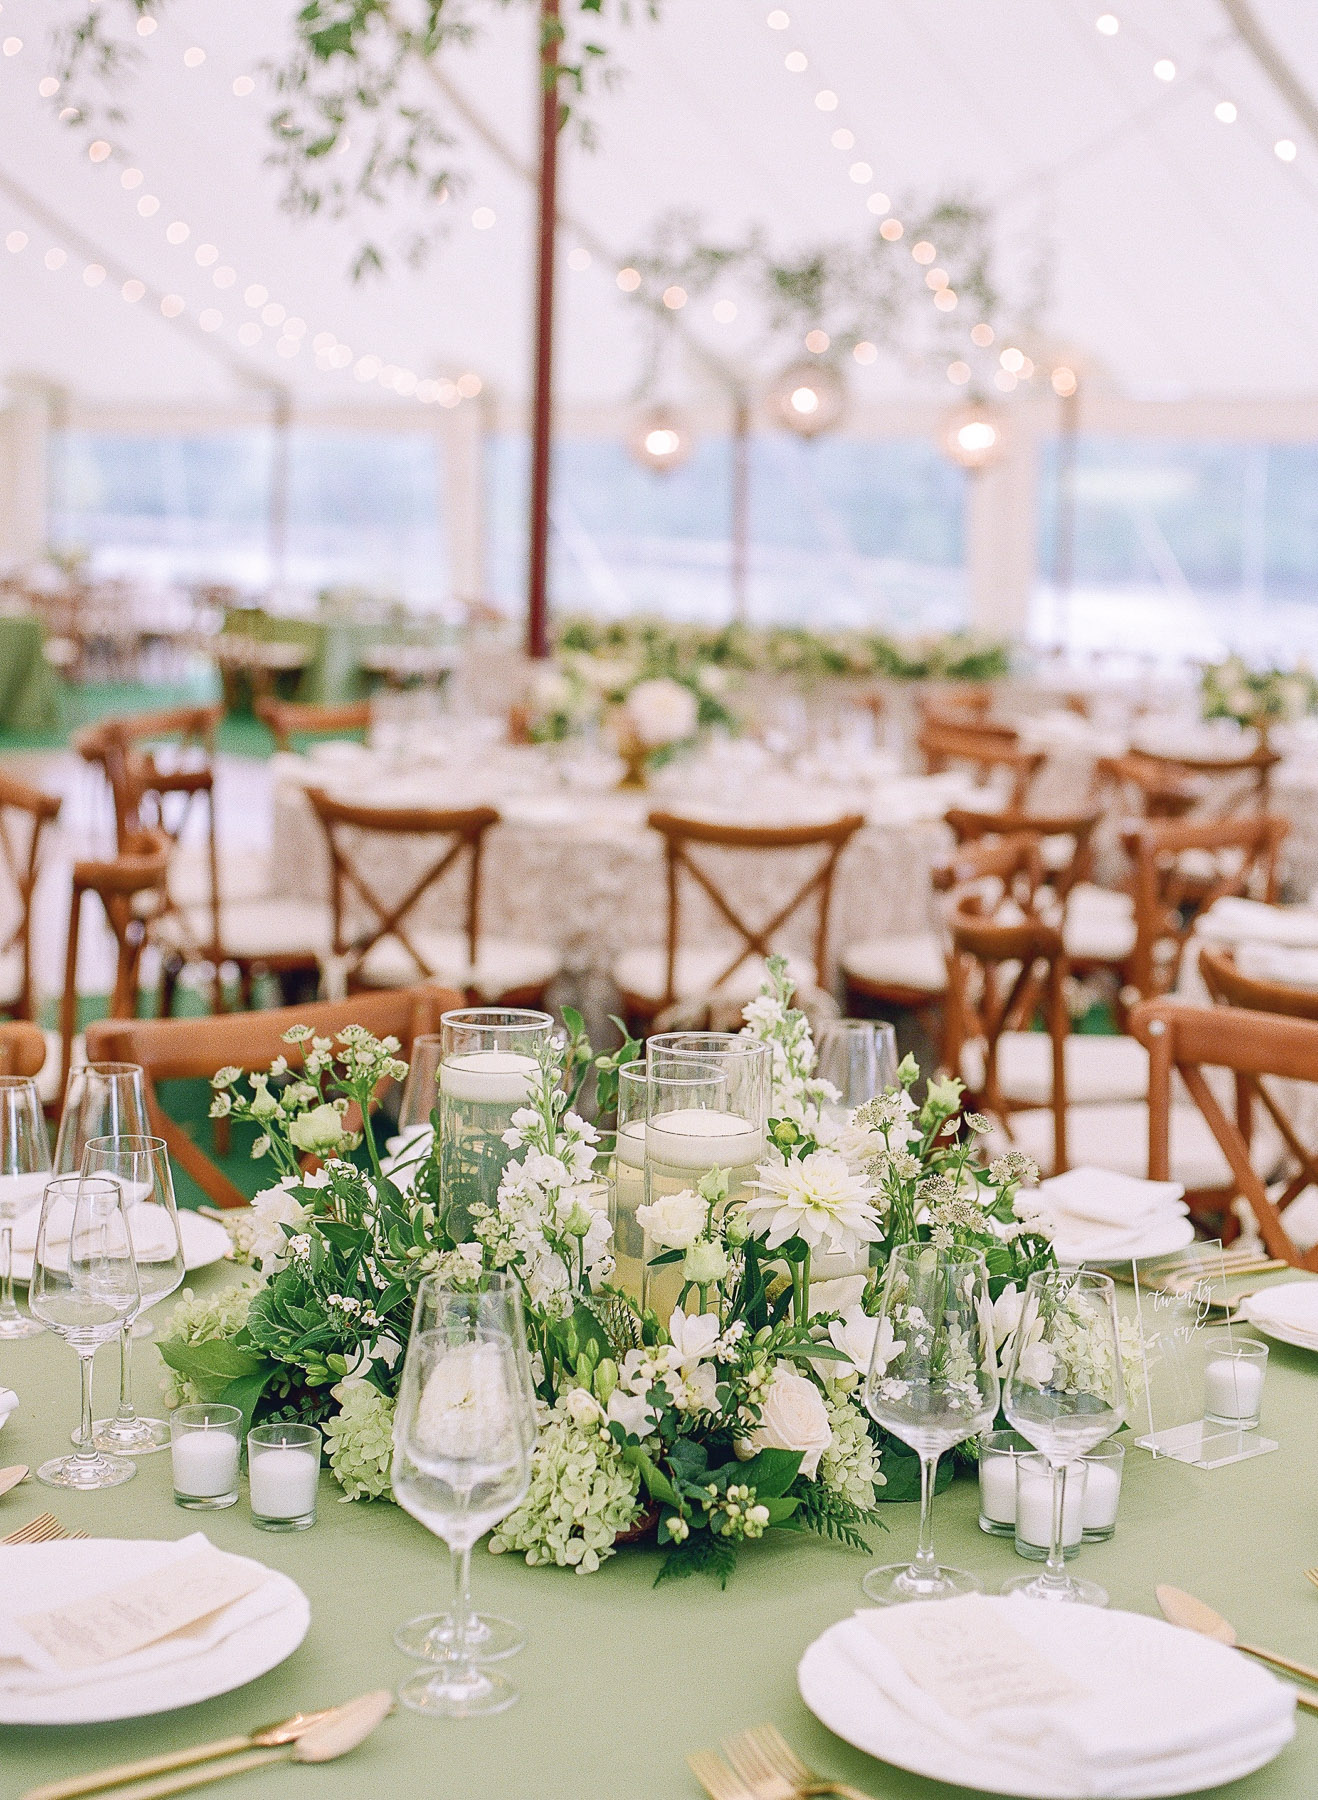 Christine wheat and renaissance floral design Private island wedding in upstate ny